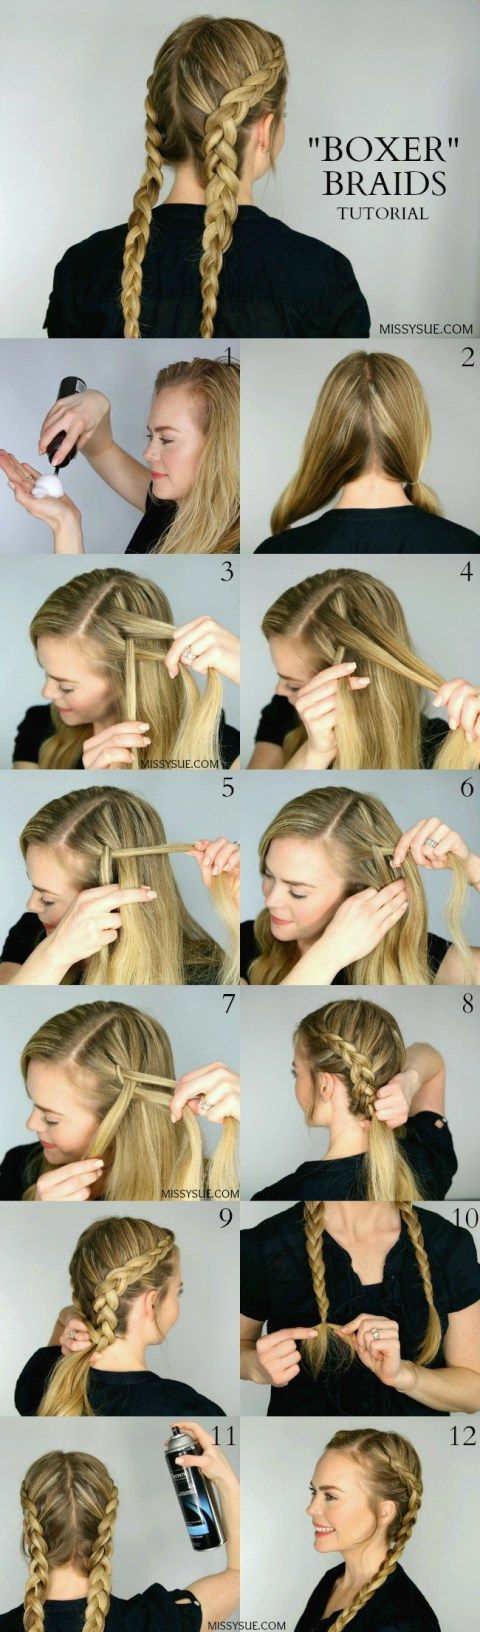 """Boxer braids are everything. They are currently the """"it"""" hairstyle and blowing up on Instagram. If you haven't mastered them yet then now is your chance! This hairstyleis quick and easy and not only perfect for every day but an awesome heat-less style and great for the gym too! Plus, if you leave them in overnight you will have gorgeous mermaid waves the next morning too. For this tutorial, I will show you a great way to prep the hair, especially for those gorgeous mermaid tresses, and keep…"""